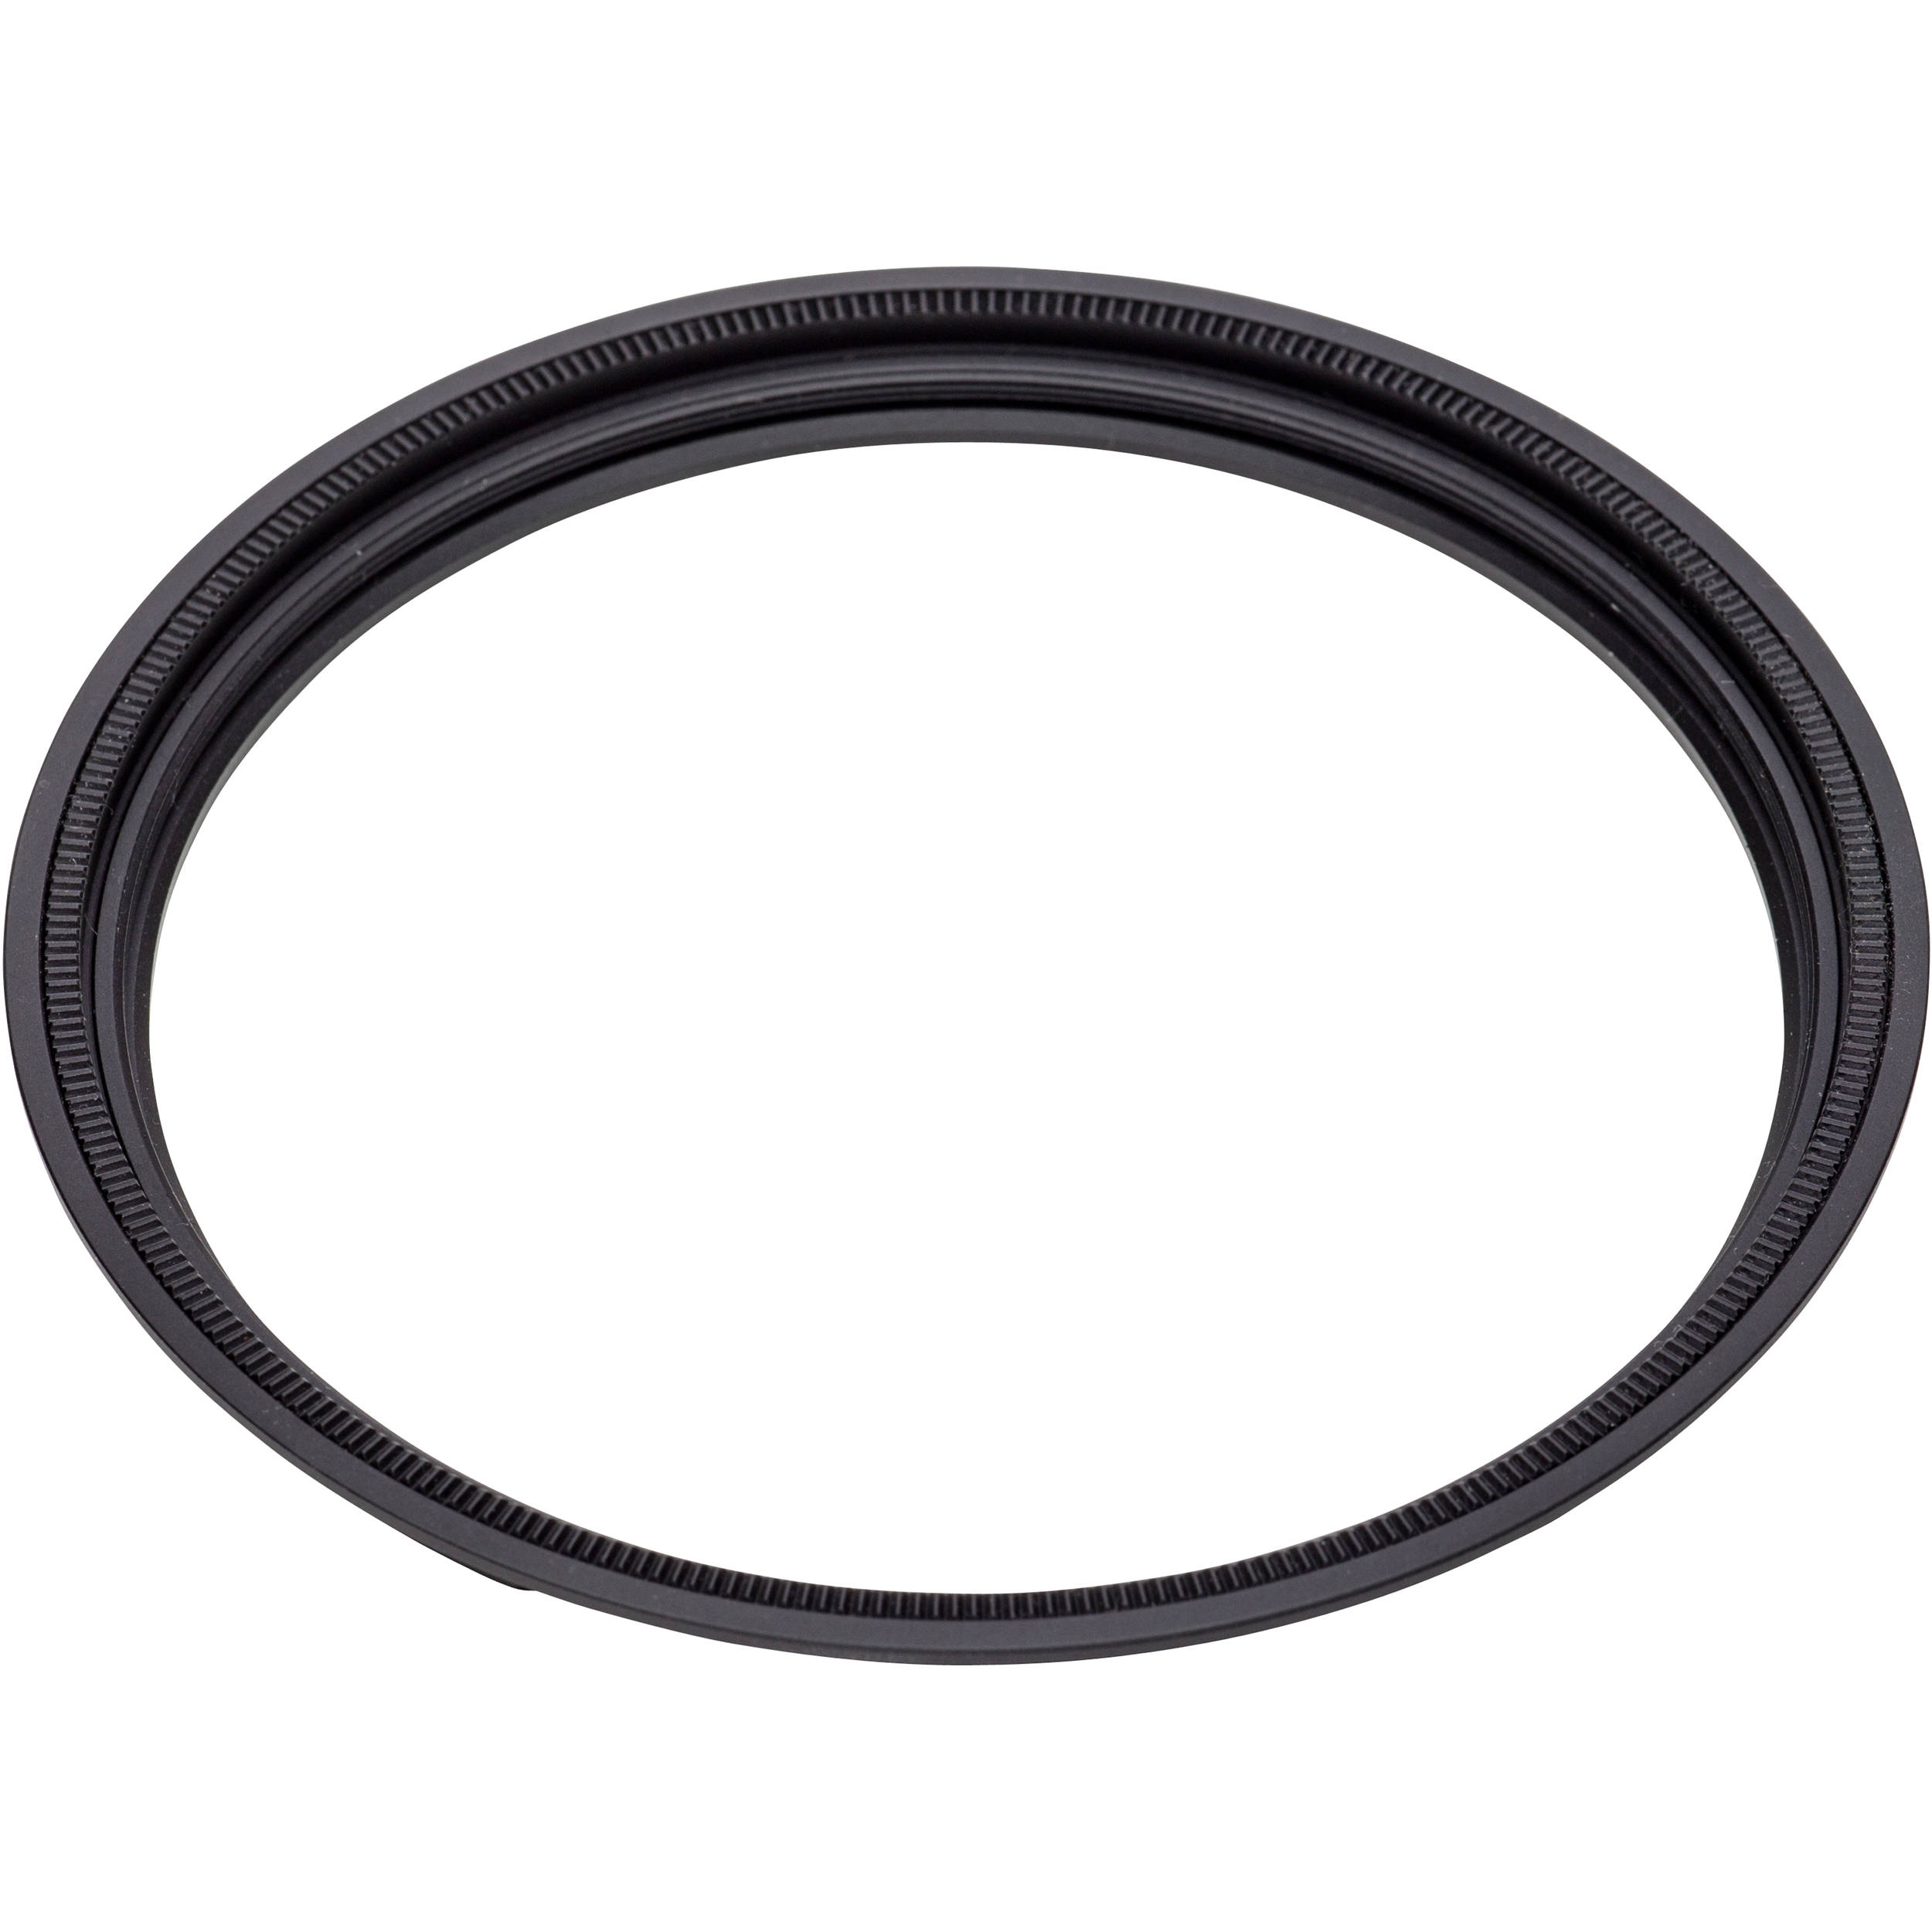 Vu Filters Mounting Ring for Professional Filter Holder (95mm) on fuel gauge, fuel exhaust, fuel centrifuge, fuel products, fuel petcock, fuel rail, fuel pipe, fuel piping, fuel strainer, fuel regulator location, fuel emissions, fuel light, fuel relay, fuel element, fuel water test kit, fuel algaecide,